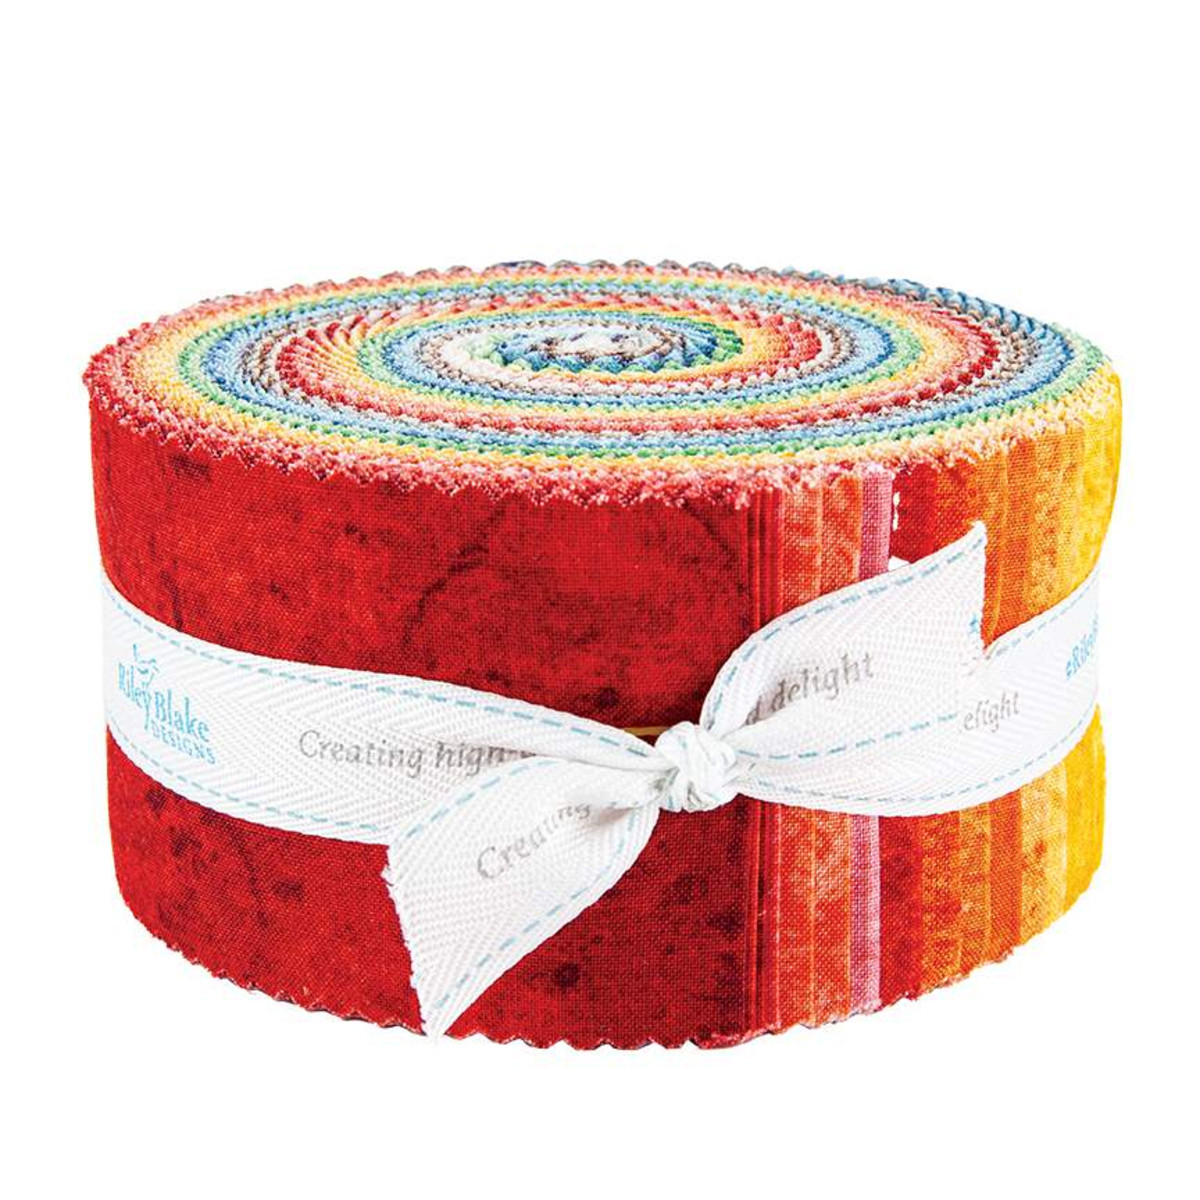 Riley Blake Jelly Roll - Painter's Watercolor Swirl by J Wecker Frisch